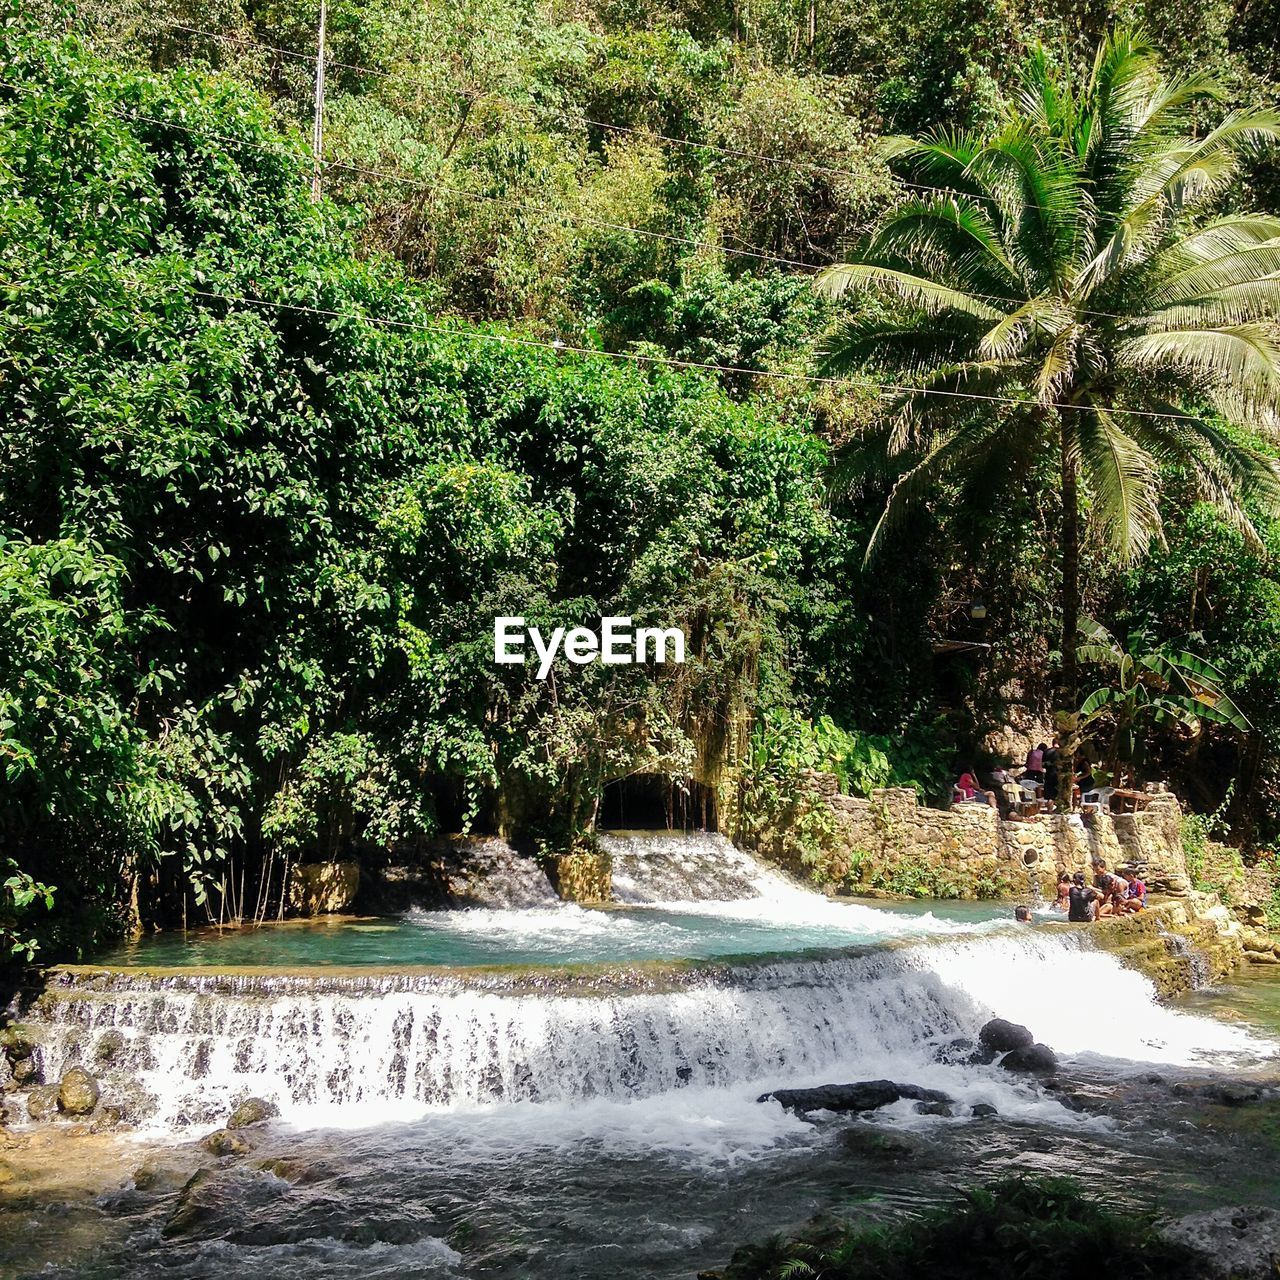 tree, water, nature, growth, beauty in nature, waterfall, scenics, motion, day, outdoors, no people, green color, tranquil scene, tranquility, plant, palm tree, forest, sky